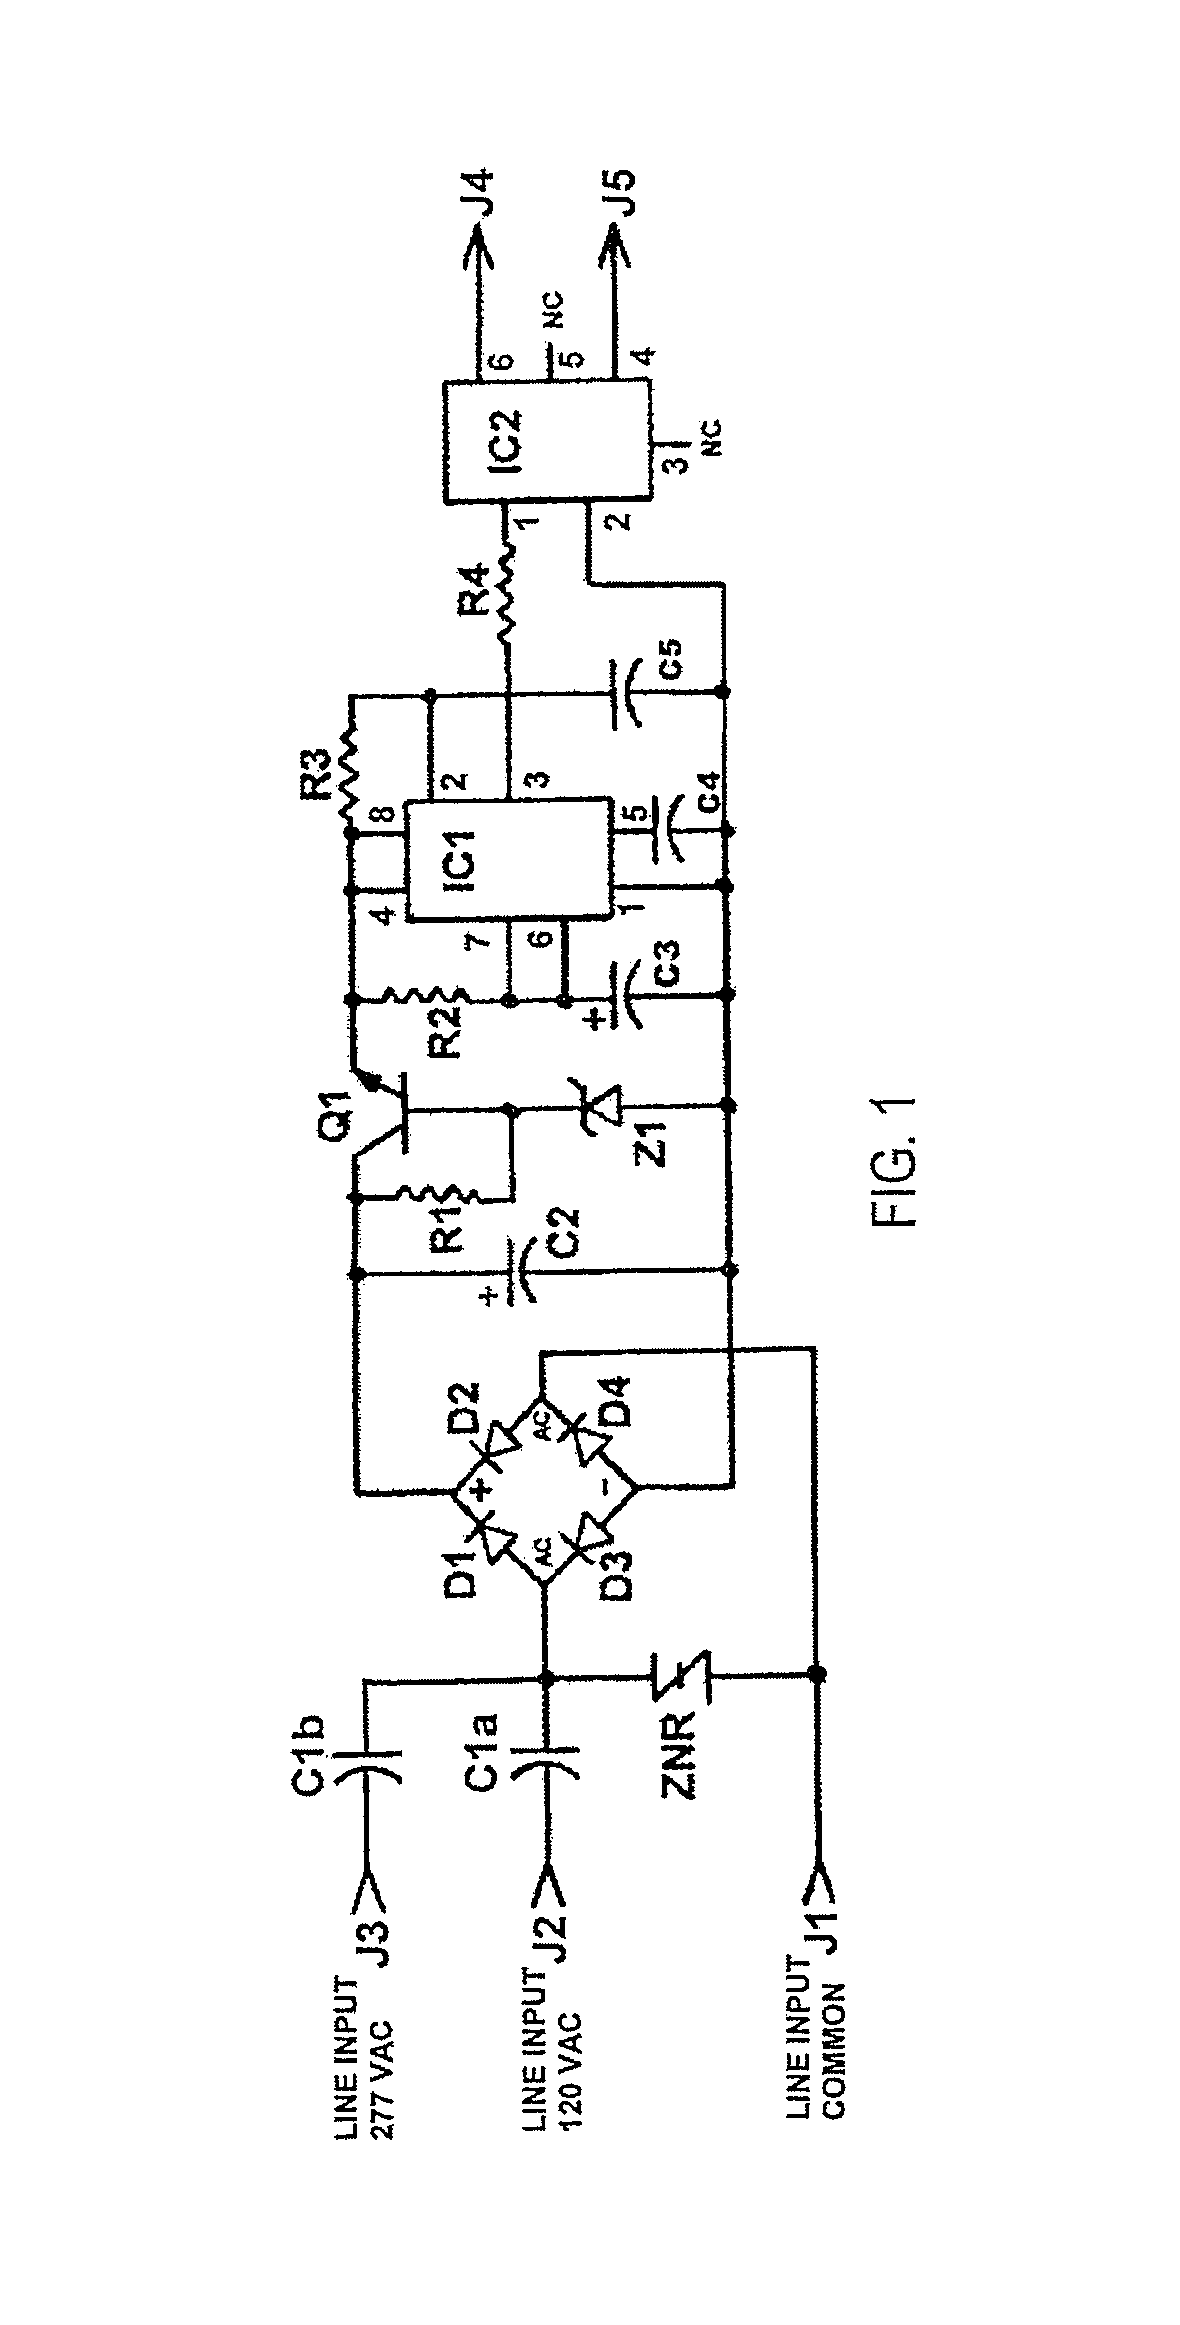 patent us7449840 - ignitor turn-off switch for hid ballasts